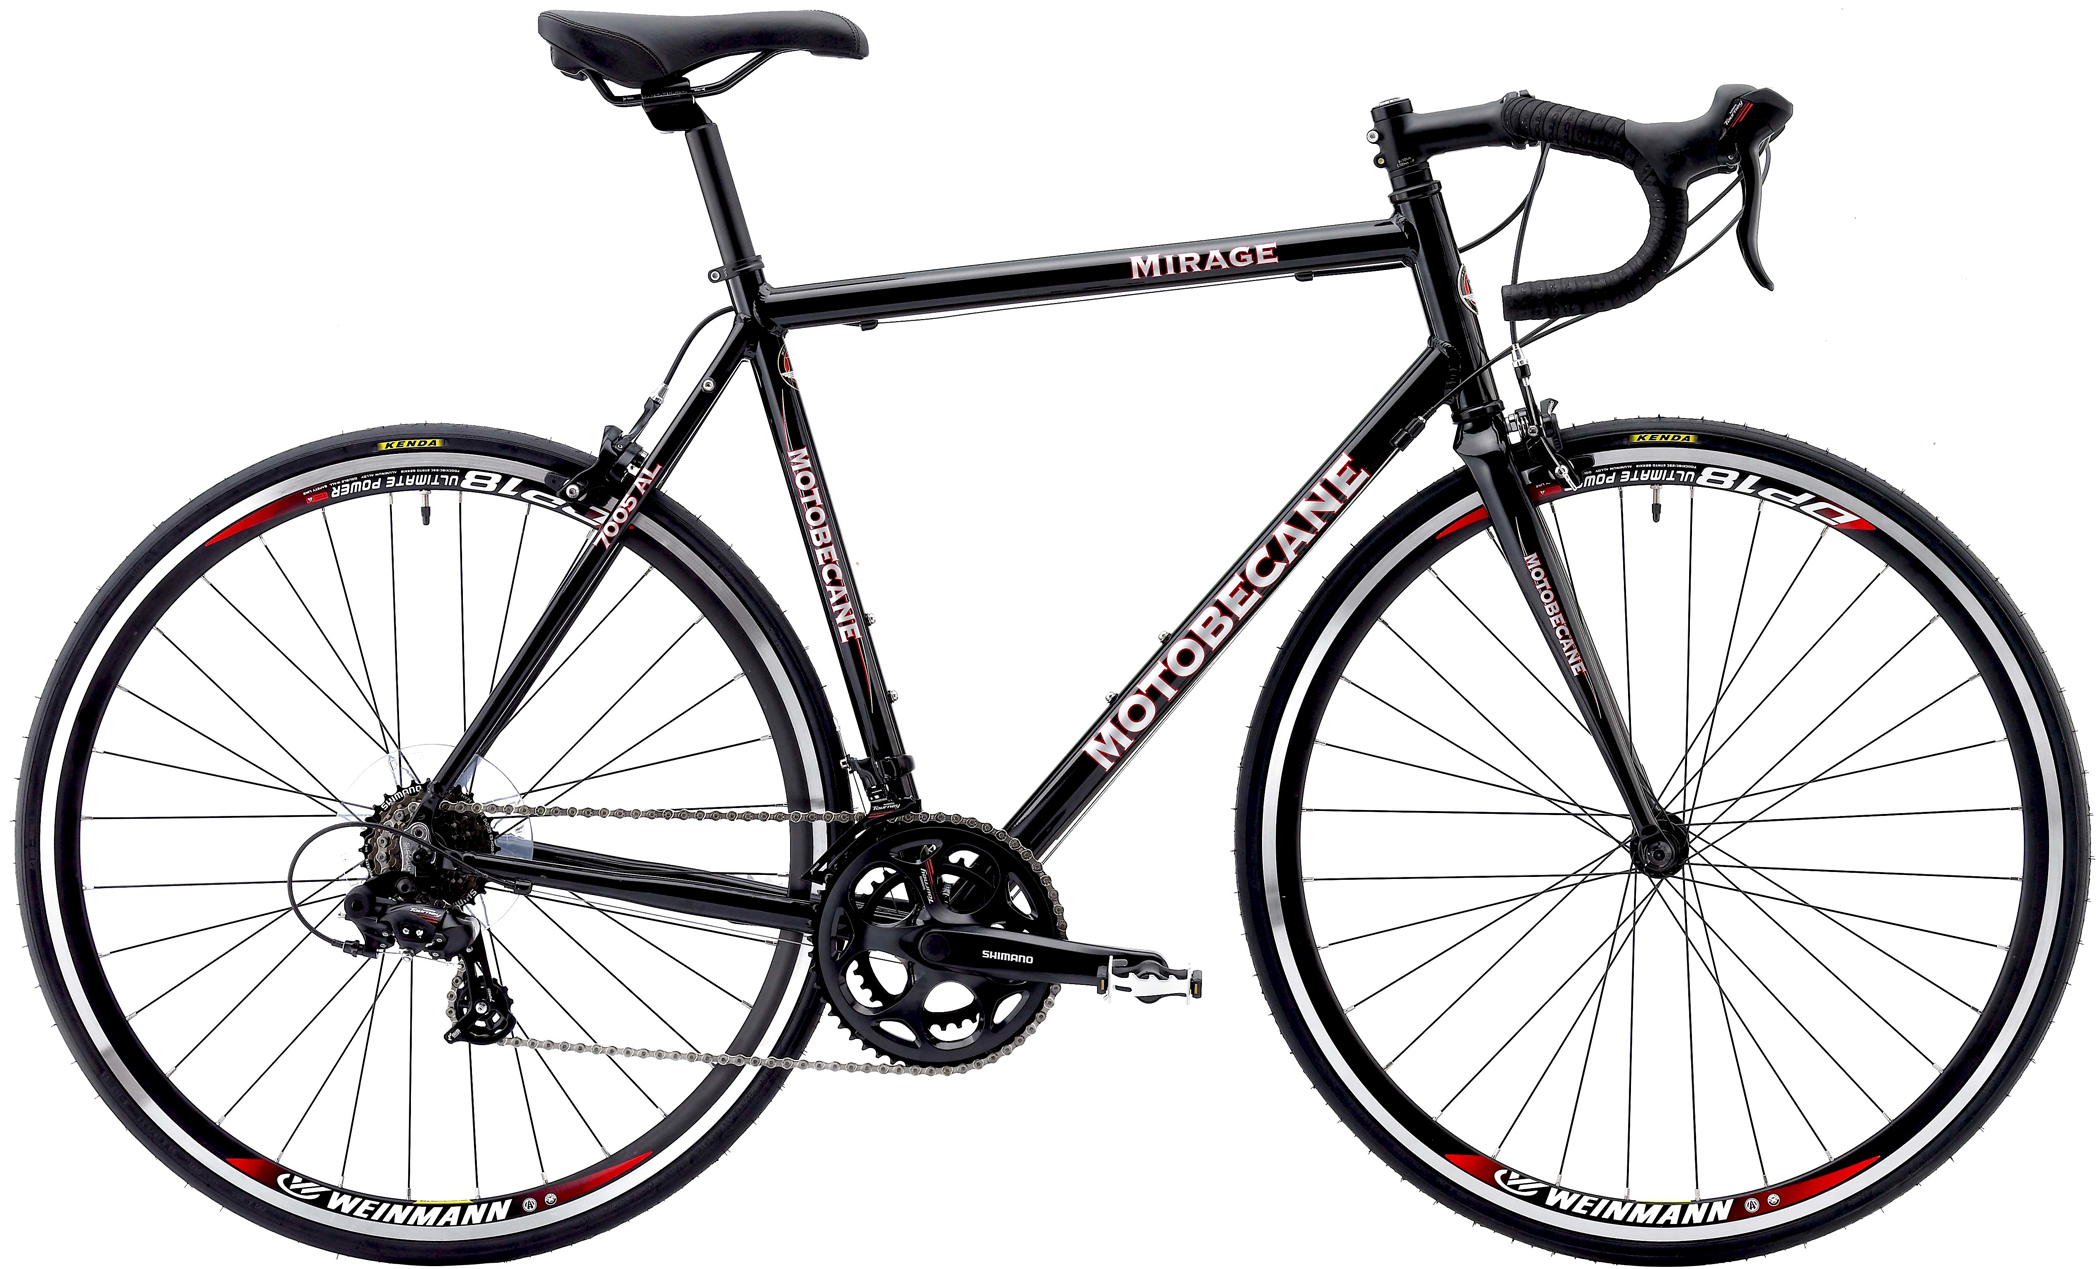 MIRAGE S     - ALUMINUM ROAD BIKE 14sp w/ CARBON & STI